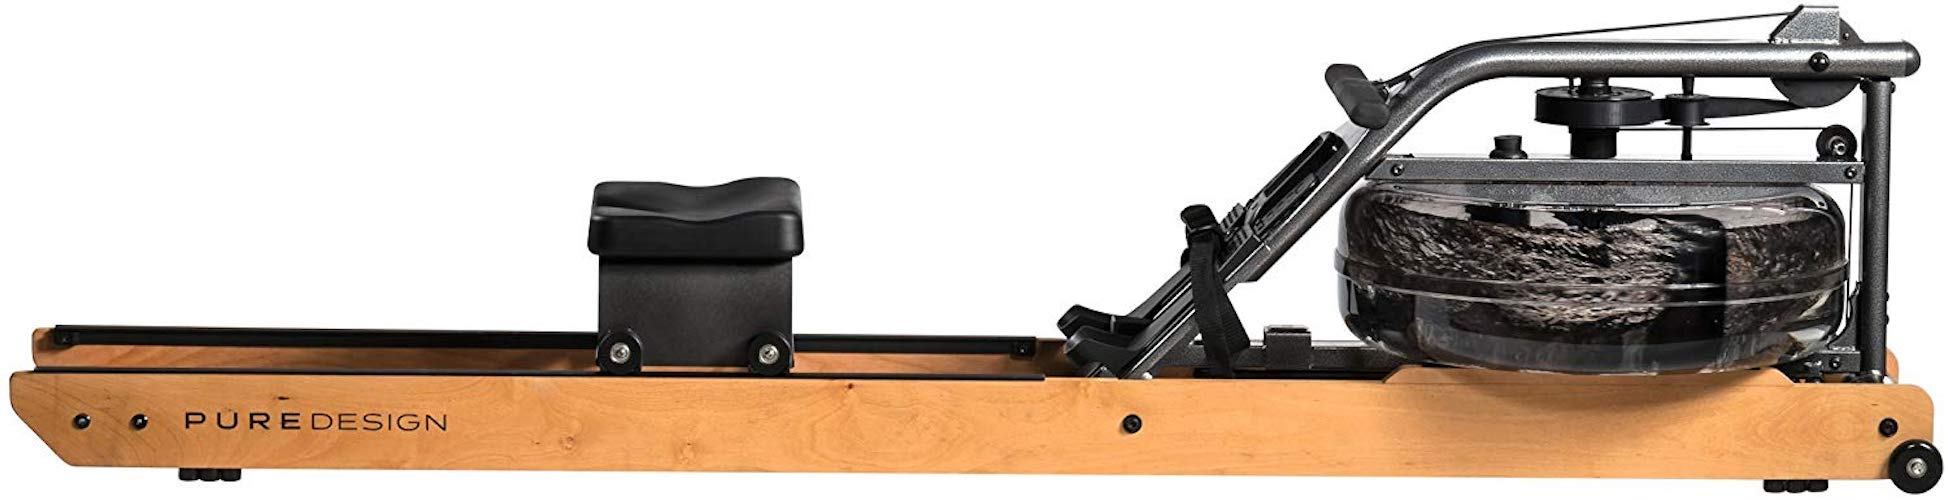 2. Pure Design Fitness Indoor Rowing Machine